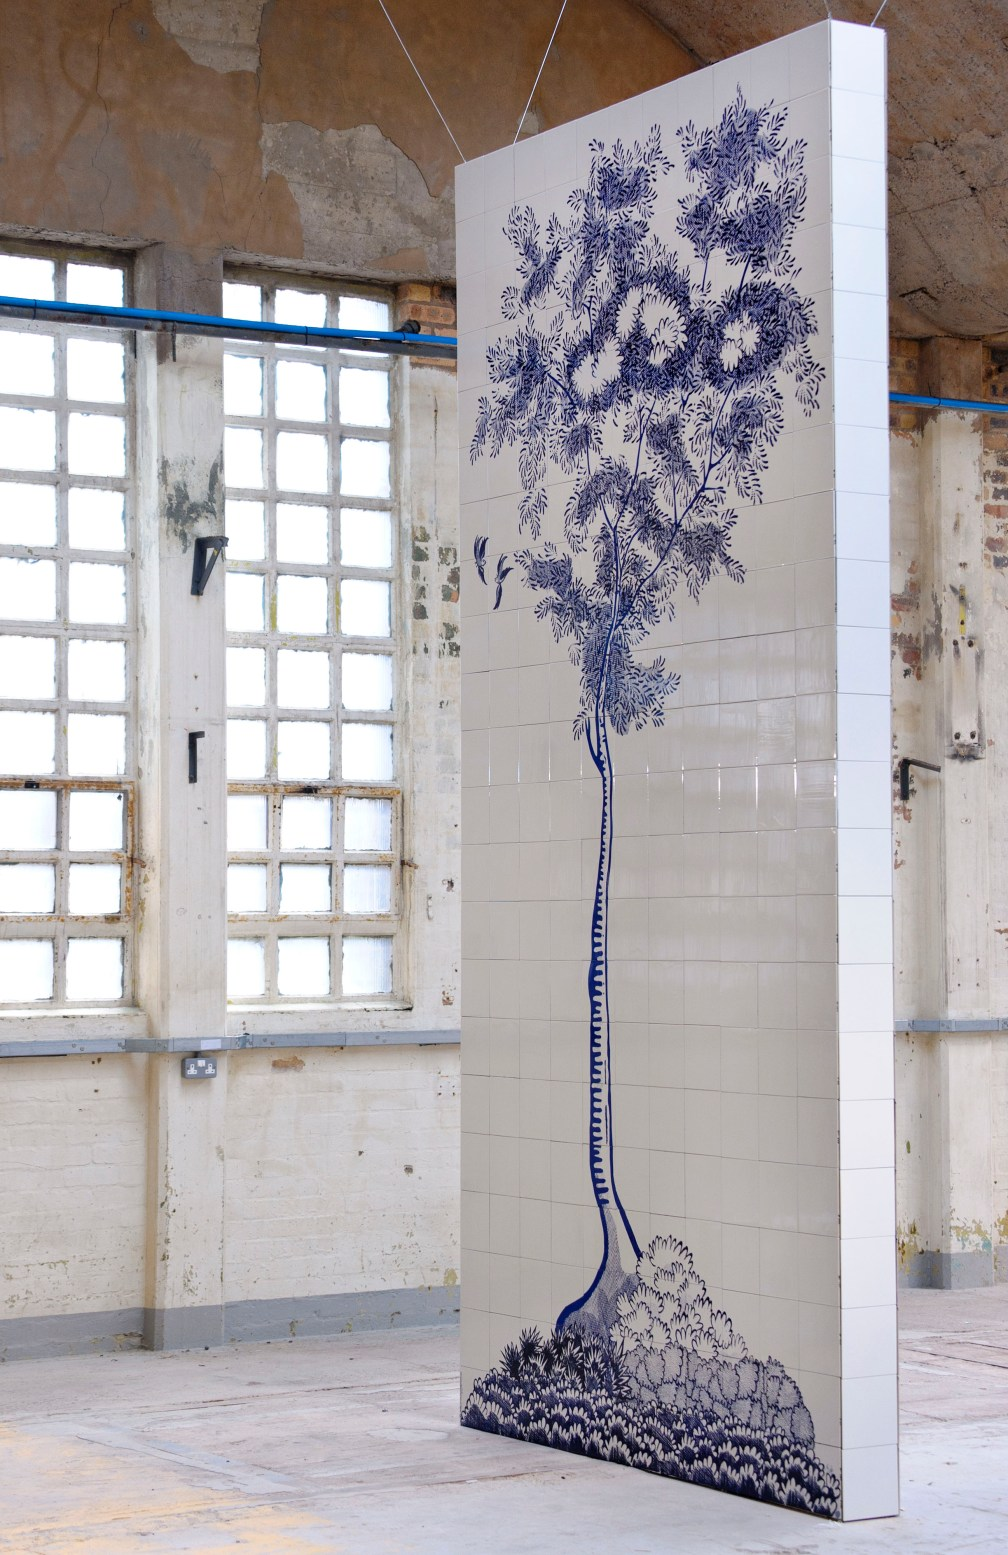 Scott's Cumbrian Blue(s) Tree after Davenport/Spode at the British Ceramics Biennial, September 2015